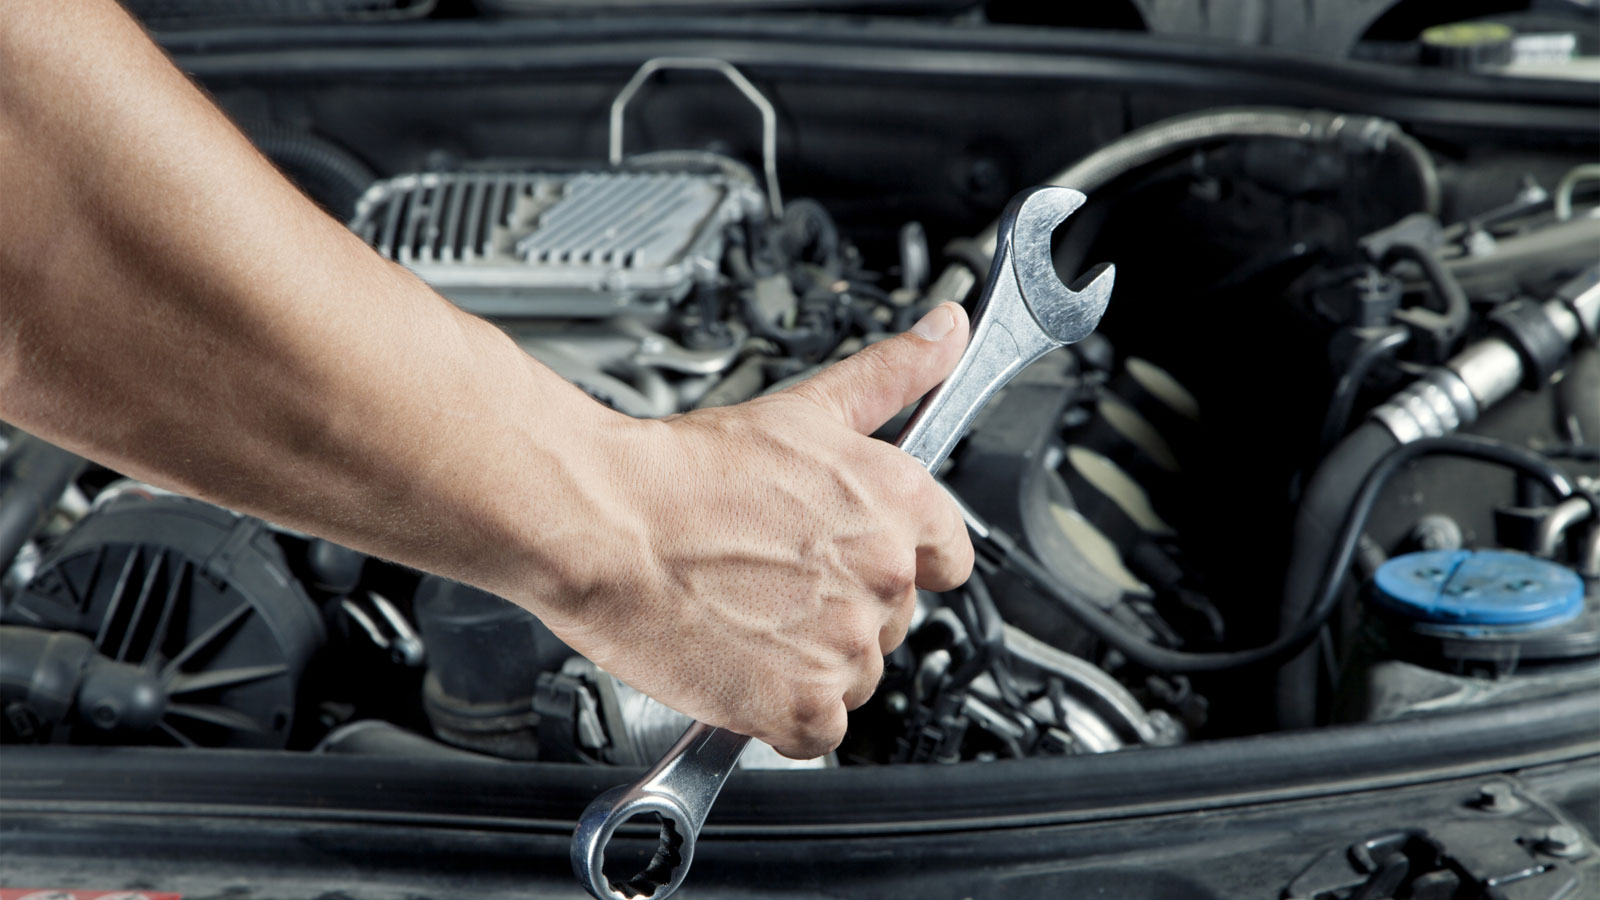 on site auto repair engine repairs diagnosis services